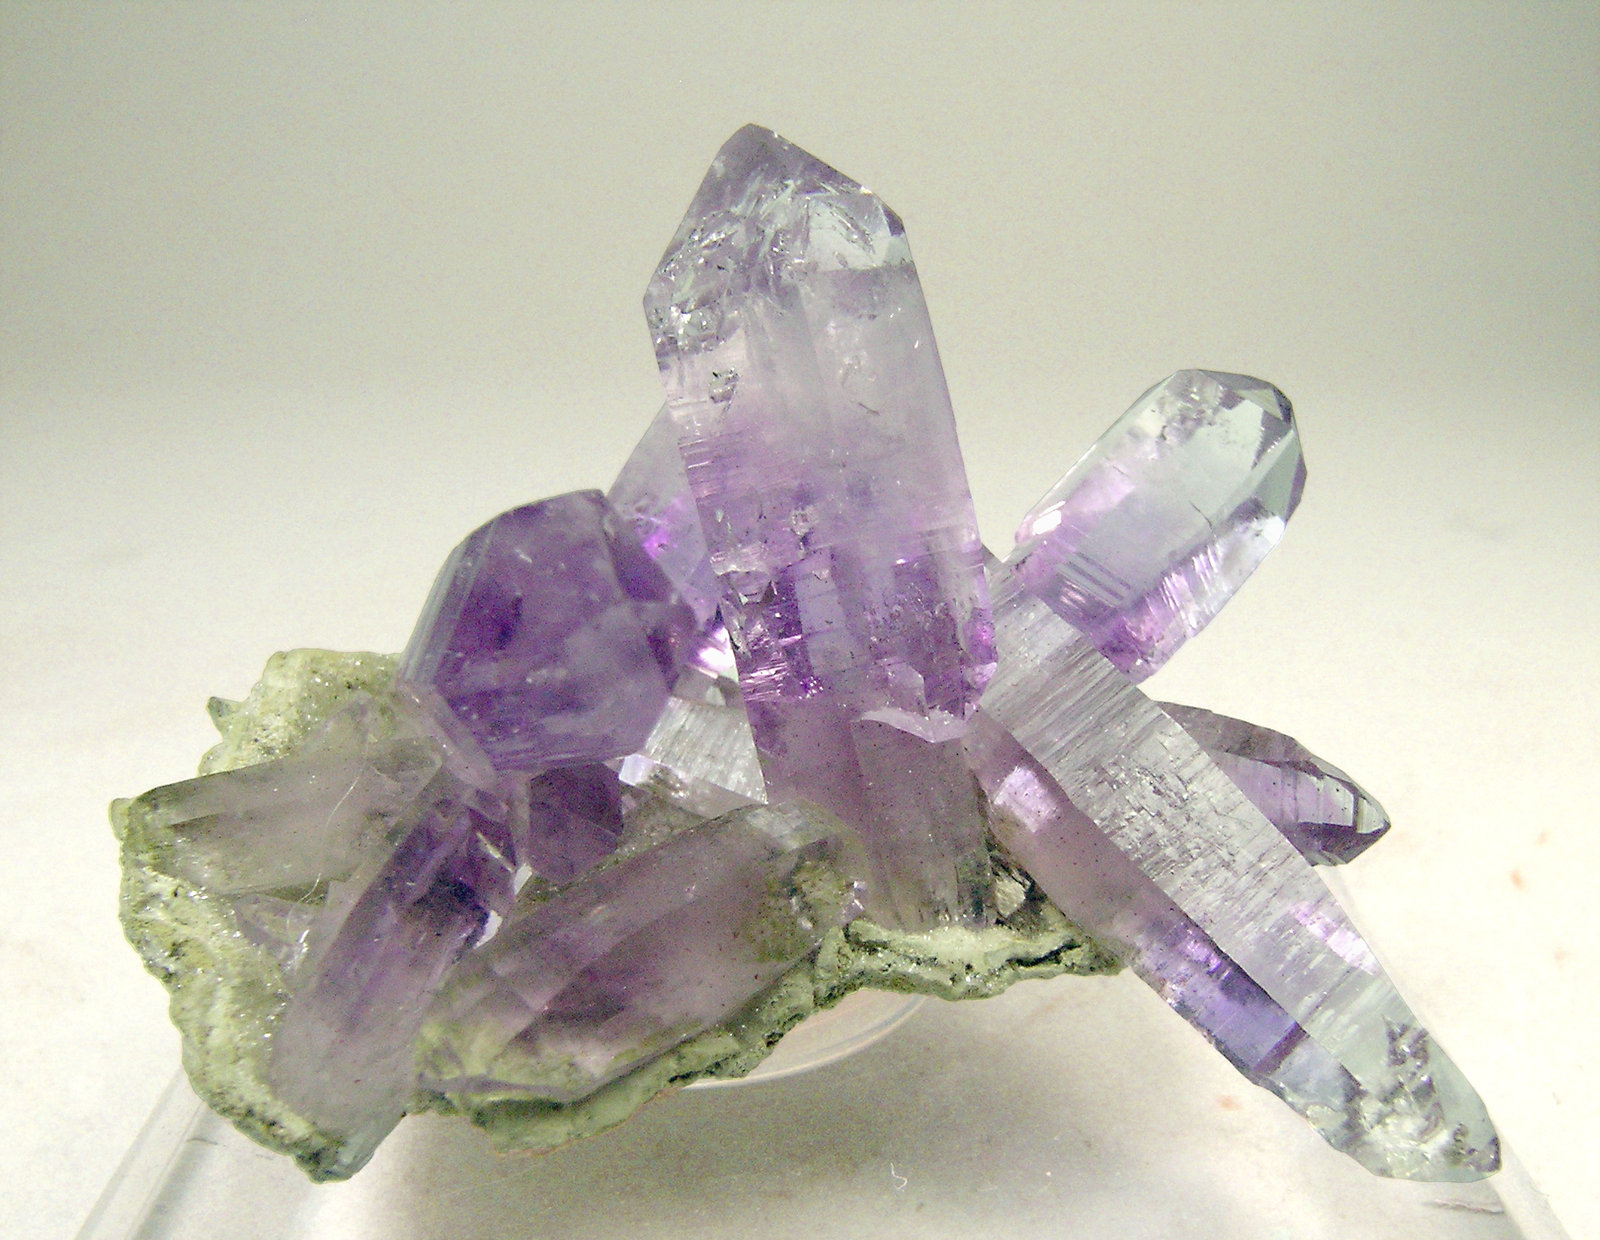 specimens/s_imagesN4/Quartz_Amethyst-HA7N4f.jpg